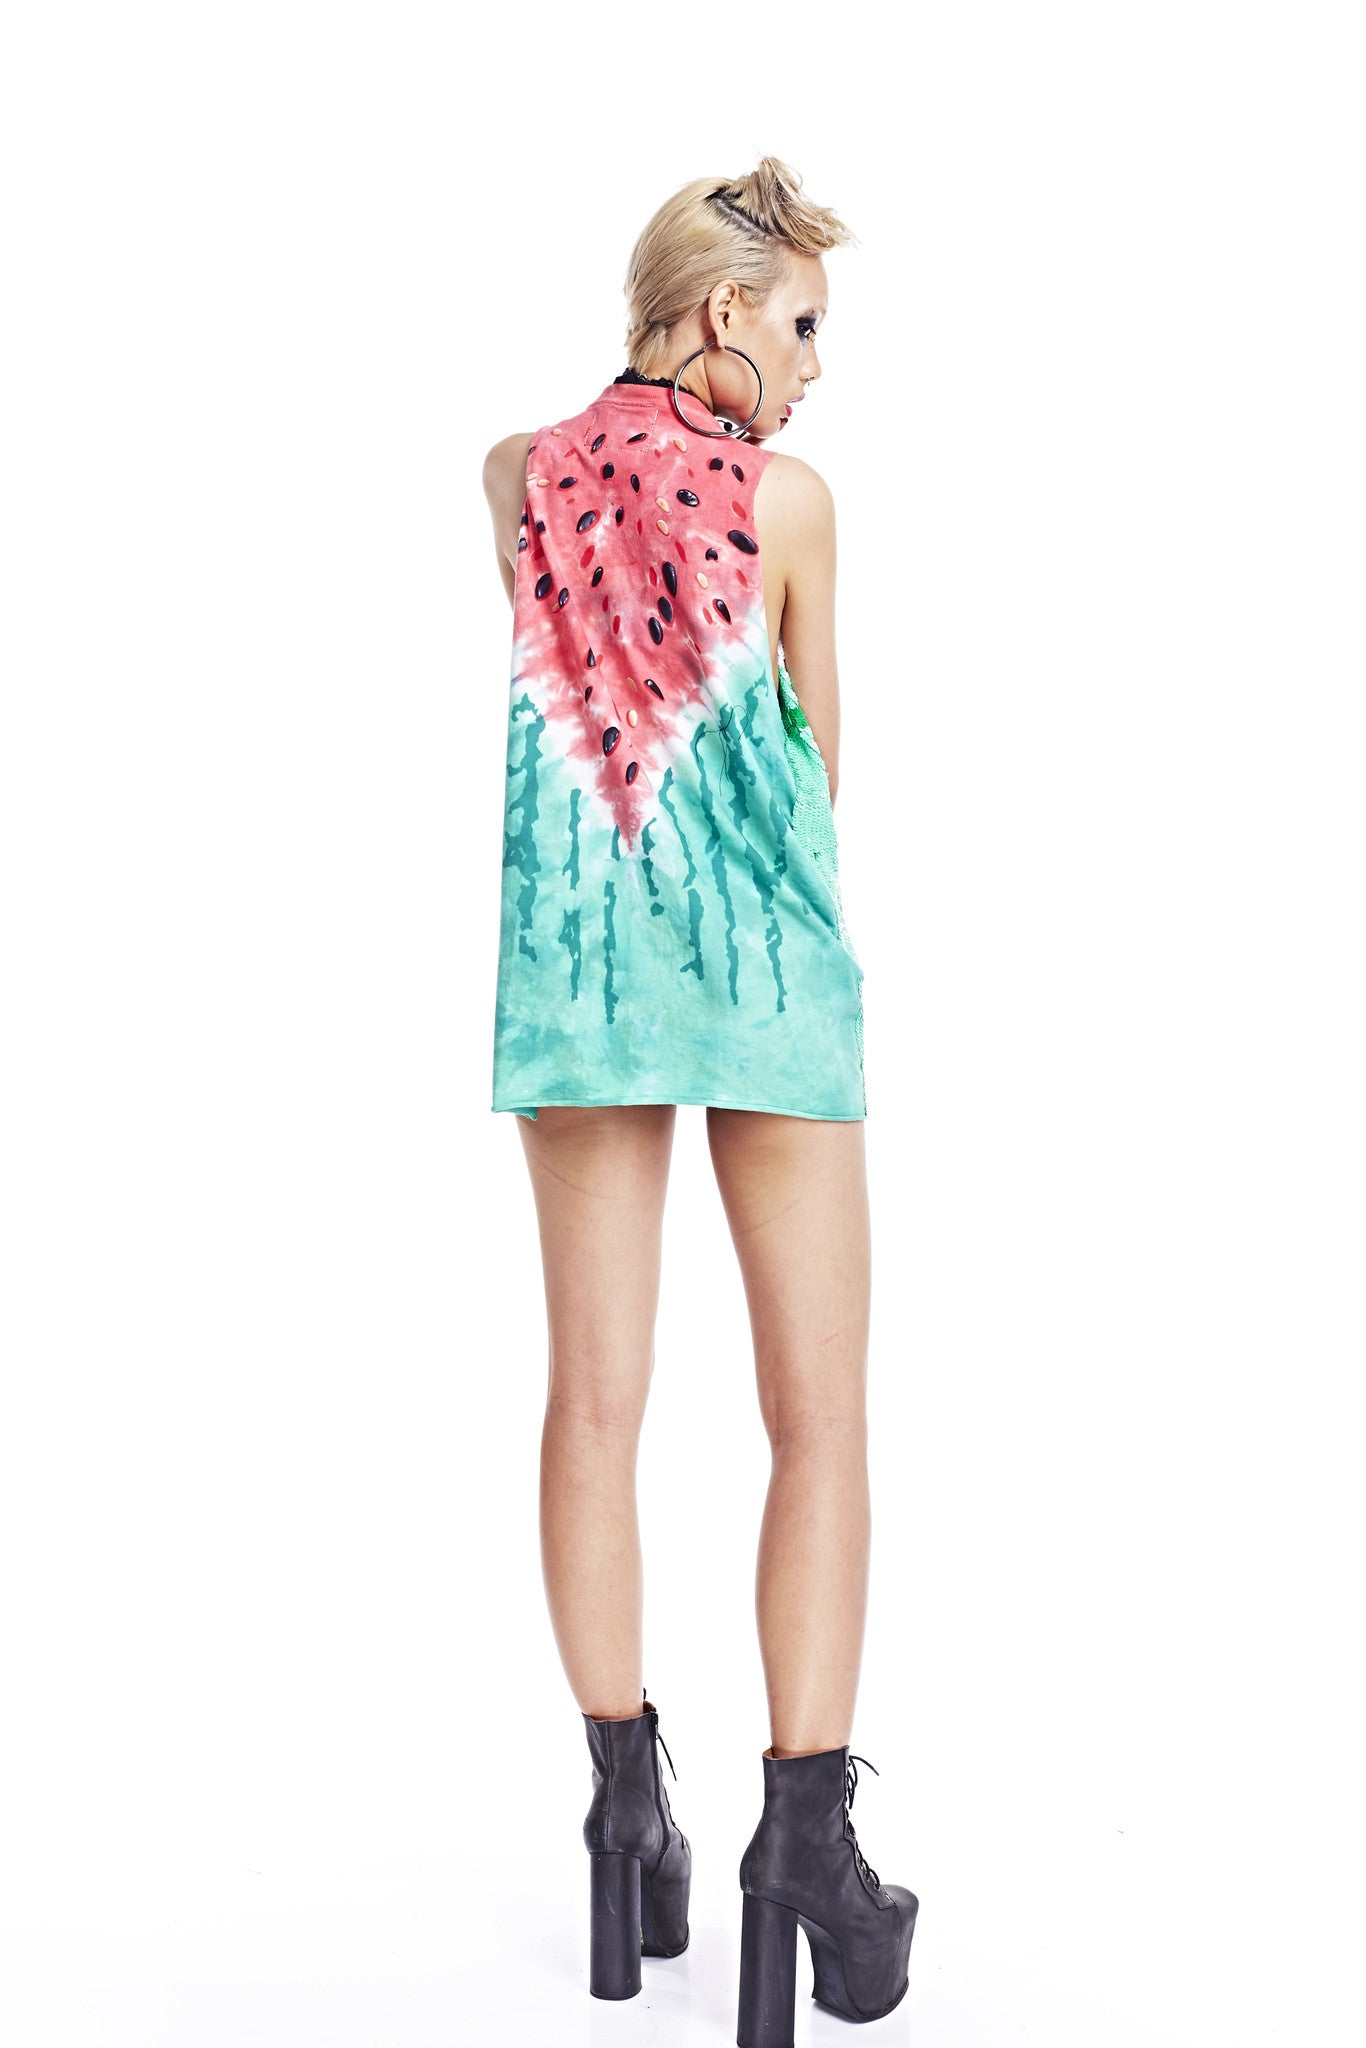 Watermelon Tank Tops